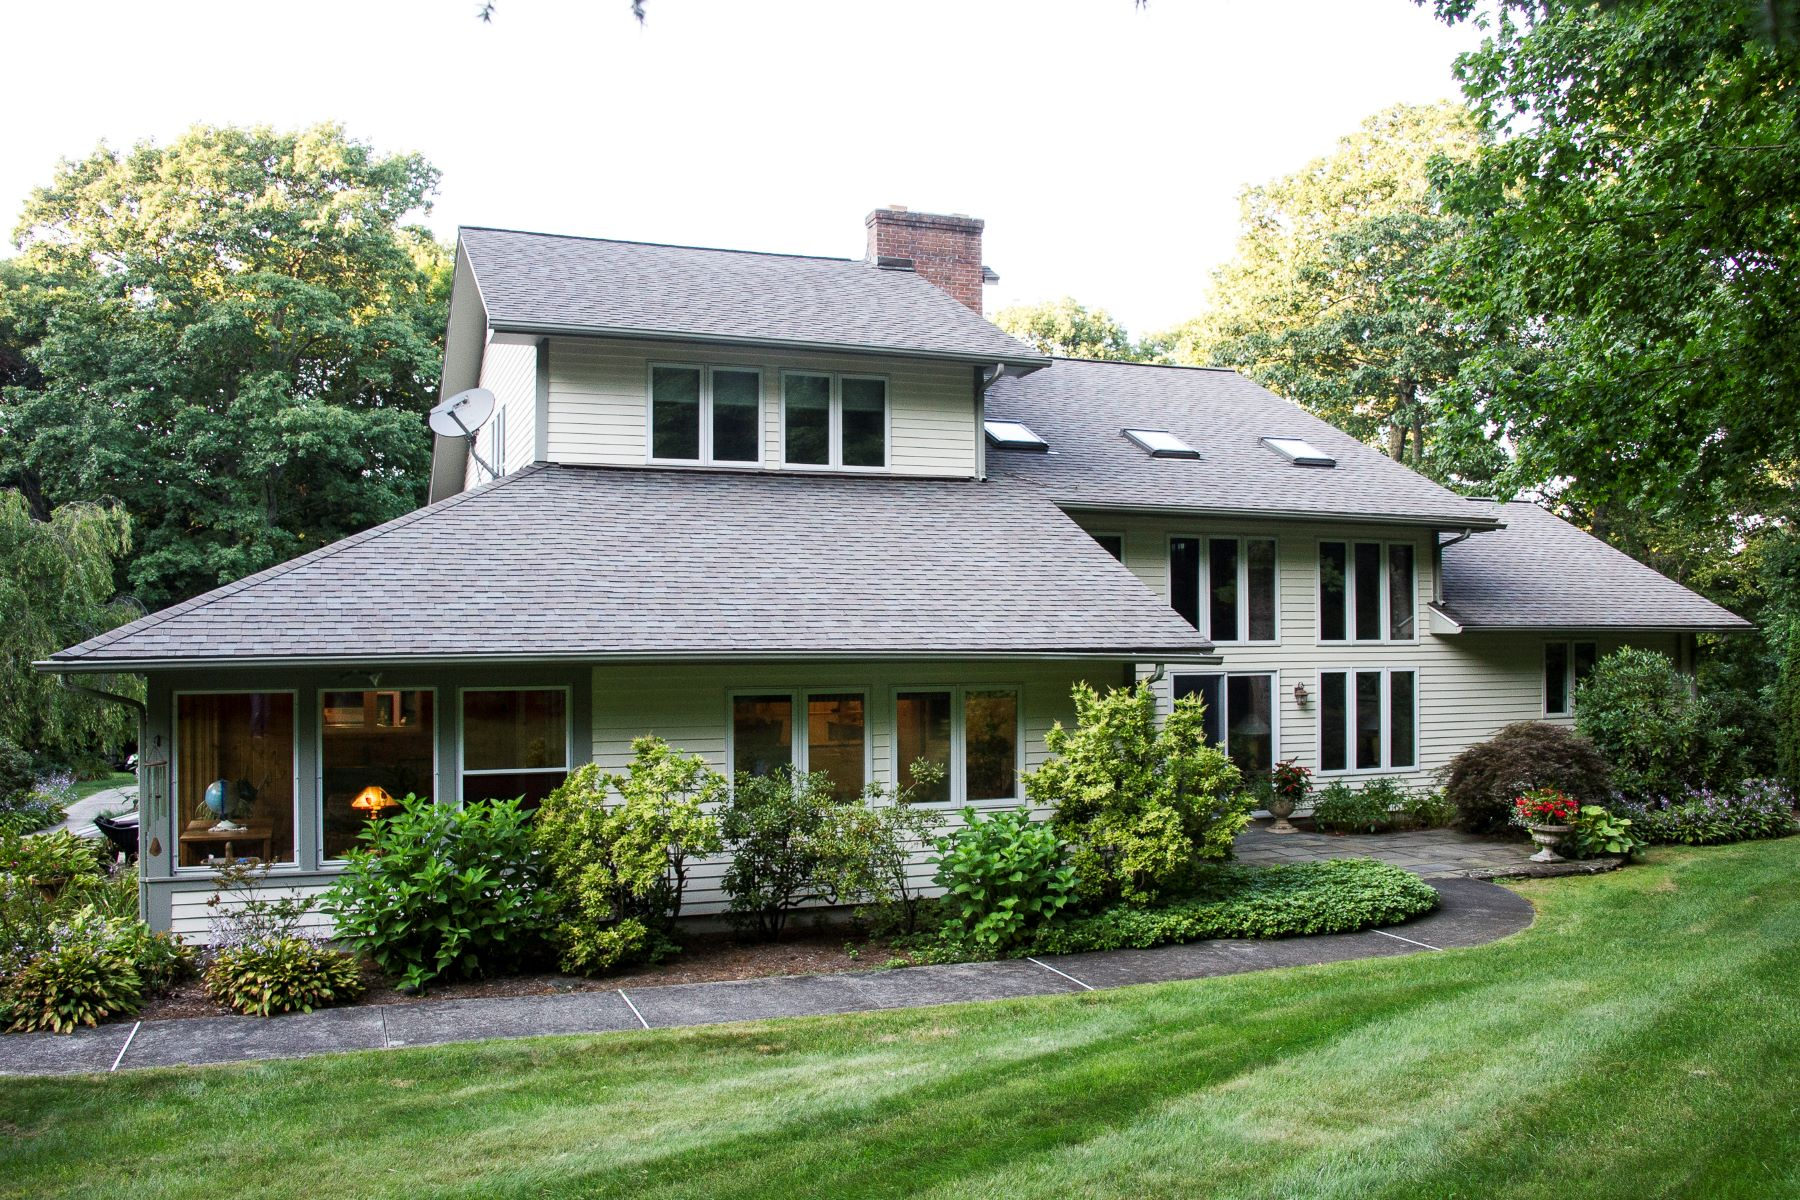 Maison unifamiliale pour l Vente à Luxury Bethlehem Contemporary Colonial 81 Deerwood Drive Bethlehem, Connecticut 06751 États-Unis